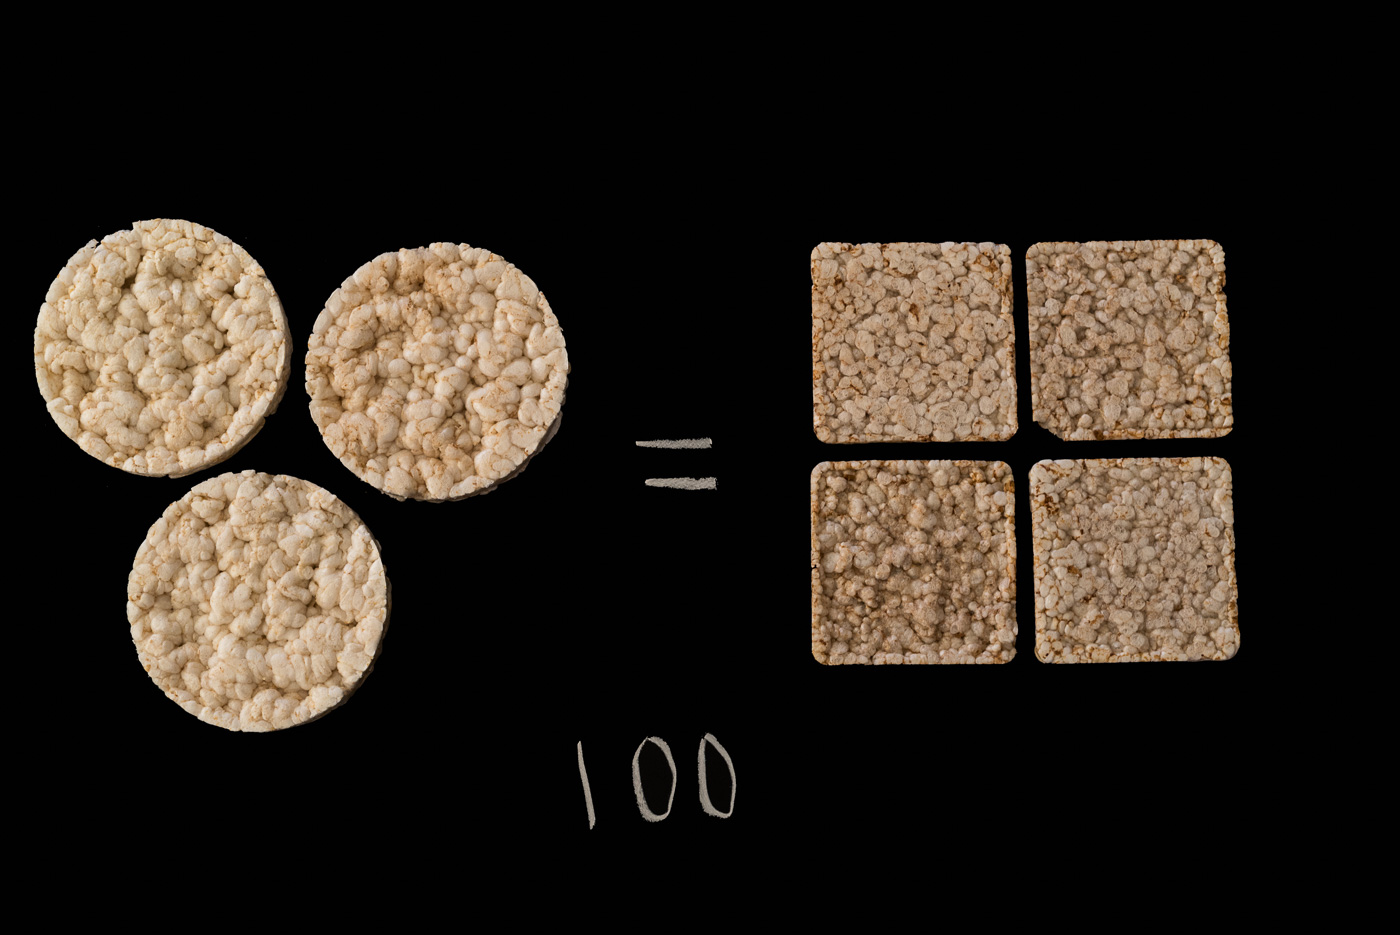 3 round rice cakes and 4 square rice cakes over the number 100 on a black background